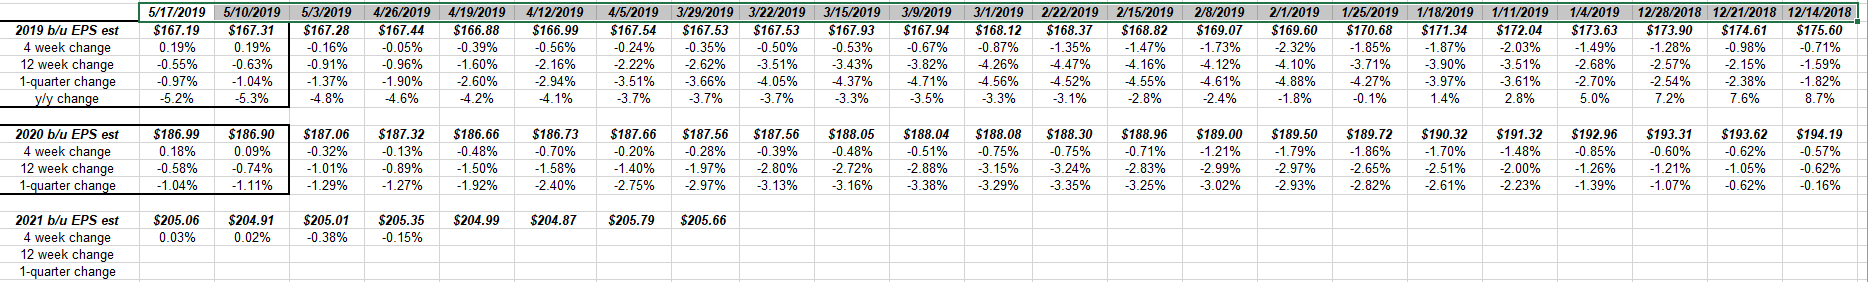 S&P 500 Earnings: 2nd Consecutive Week Of 2019 And 2020 Estimate Improvement